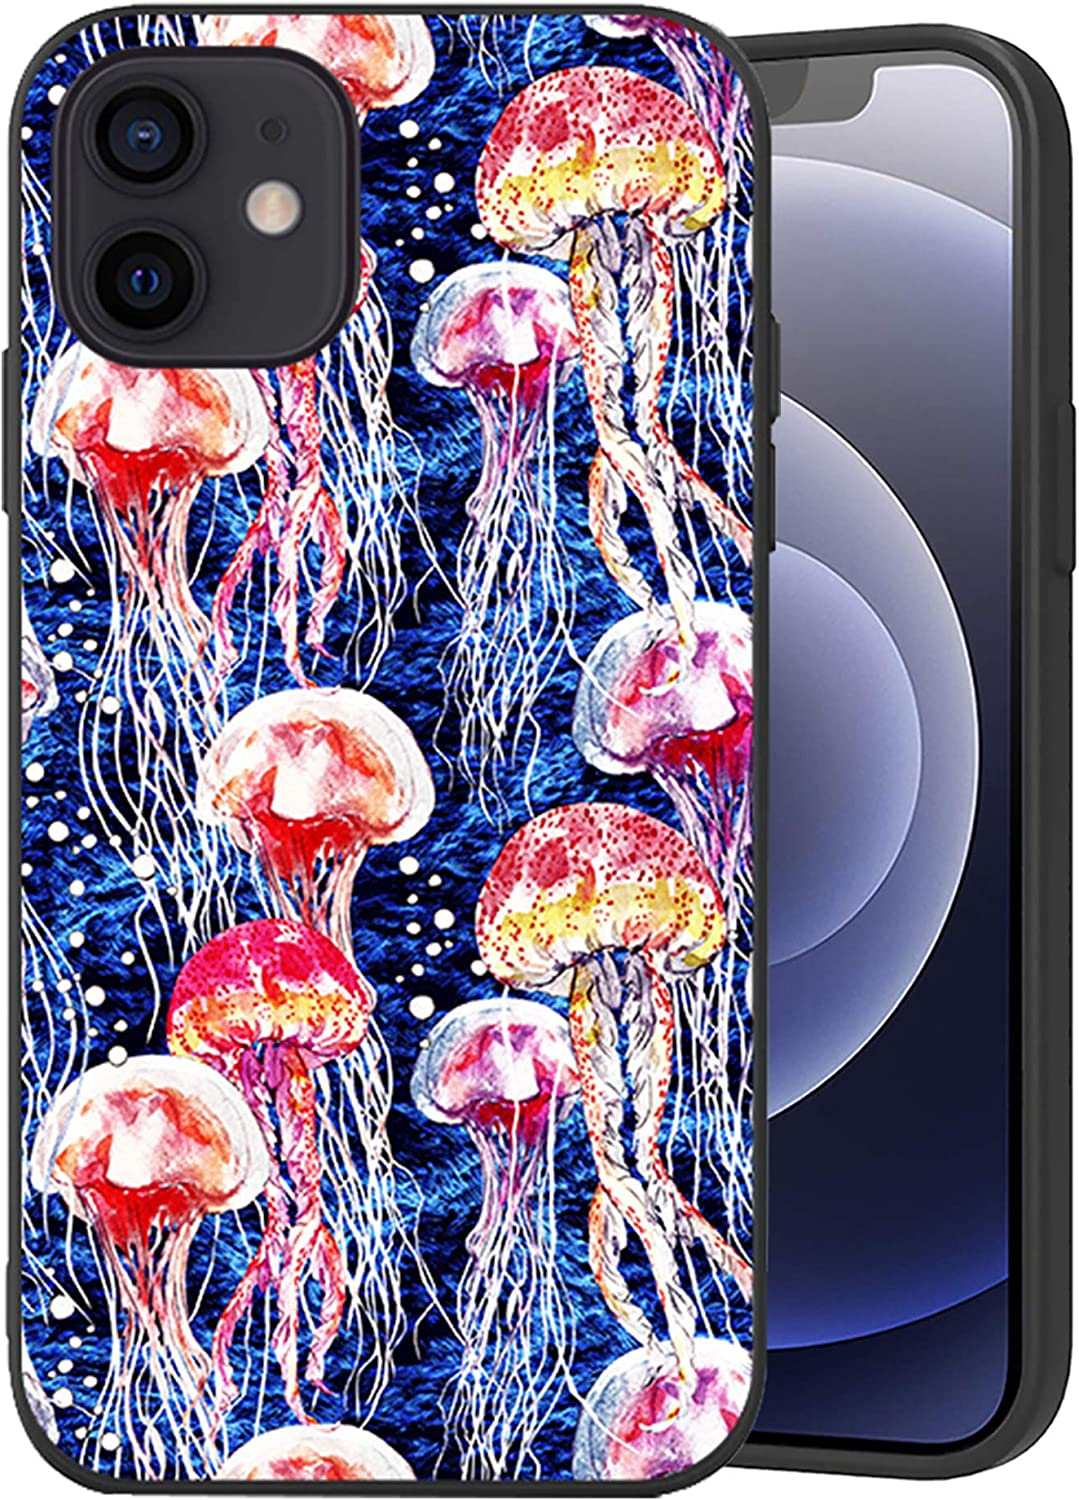 Wozukia Bright Jellyfish Case Compatible with iPhone 12 and iPhone 12 Pro 6.1 Inch 2020 Bubbles on The Blue Watercolor Texture Nautical Ocean Marine Red Soft Flexible TPU Shockproof Protector Cover